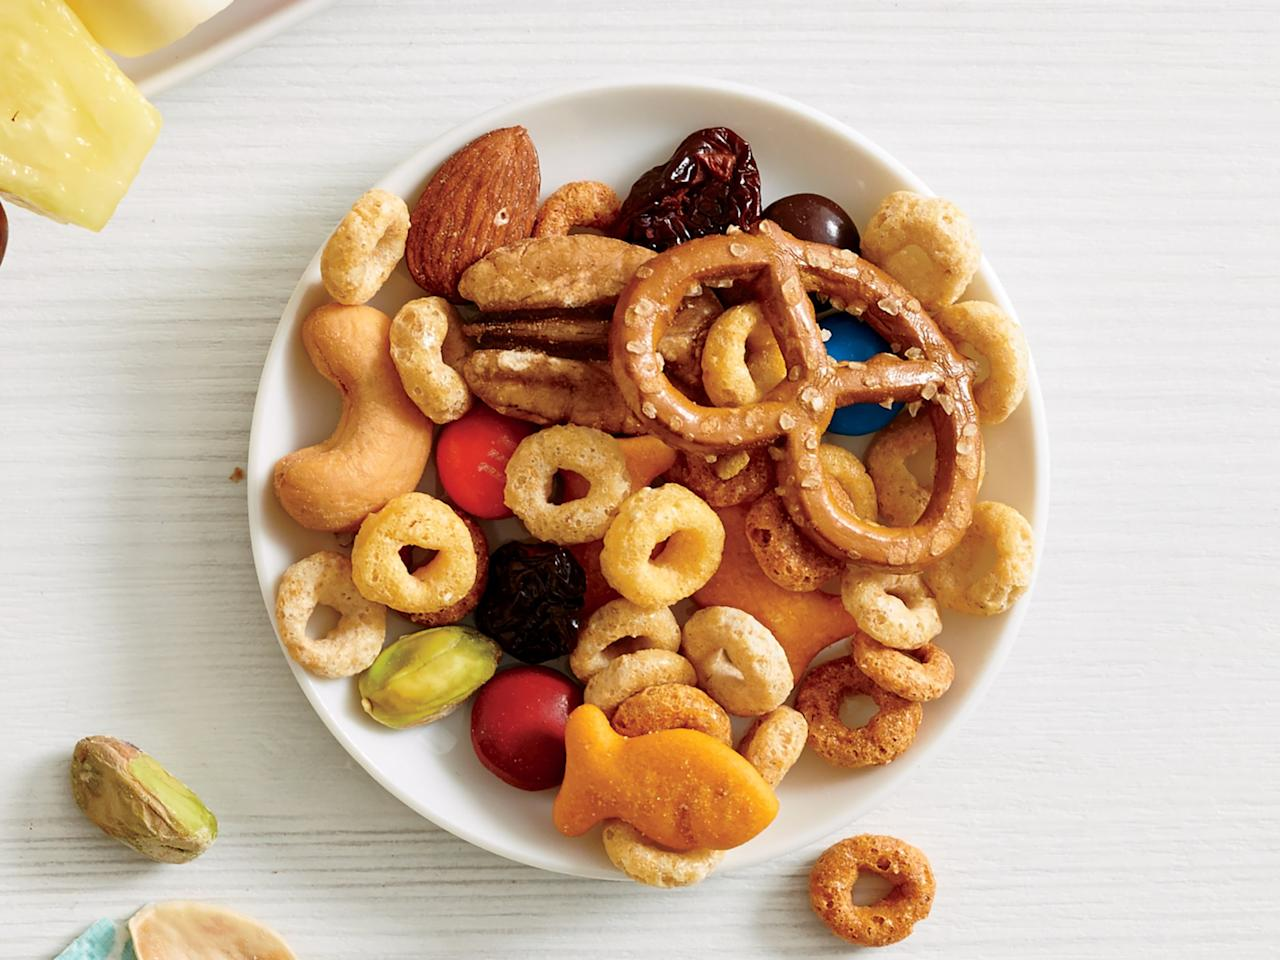 """<p>Nuts and Bolts Trail Mix satisfies a sweet and salty craving while giving you an energy boost throughout the day.</p> <p><a href=""""https://www.myrecipes.com/recipe/nuts-bolts-trail-mix"""">Nuts and Bolts Trail Mix Recipe</a></p>"""